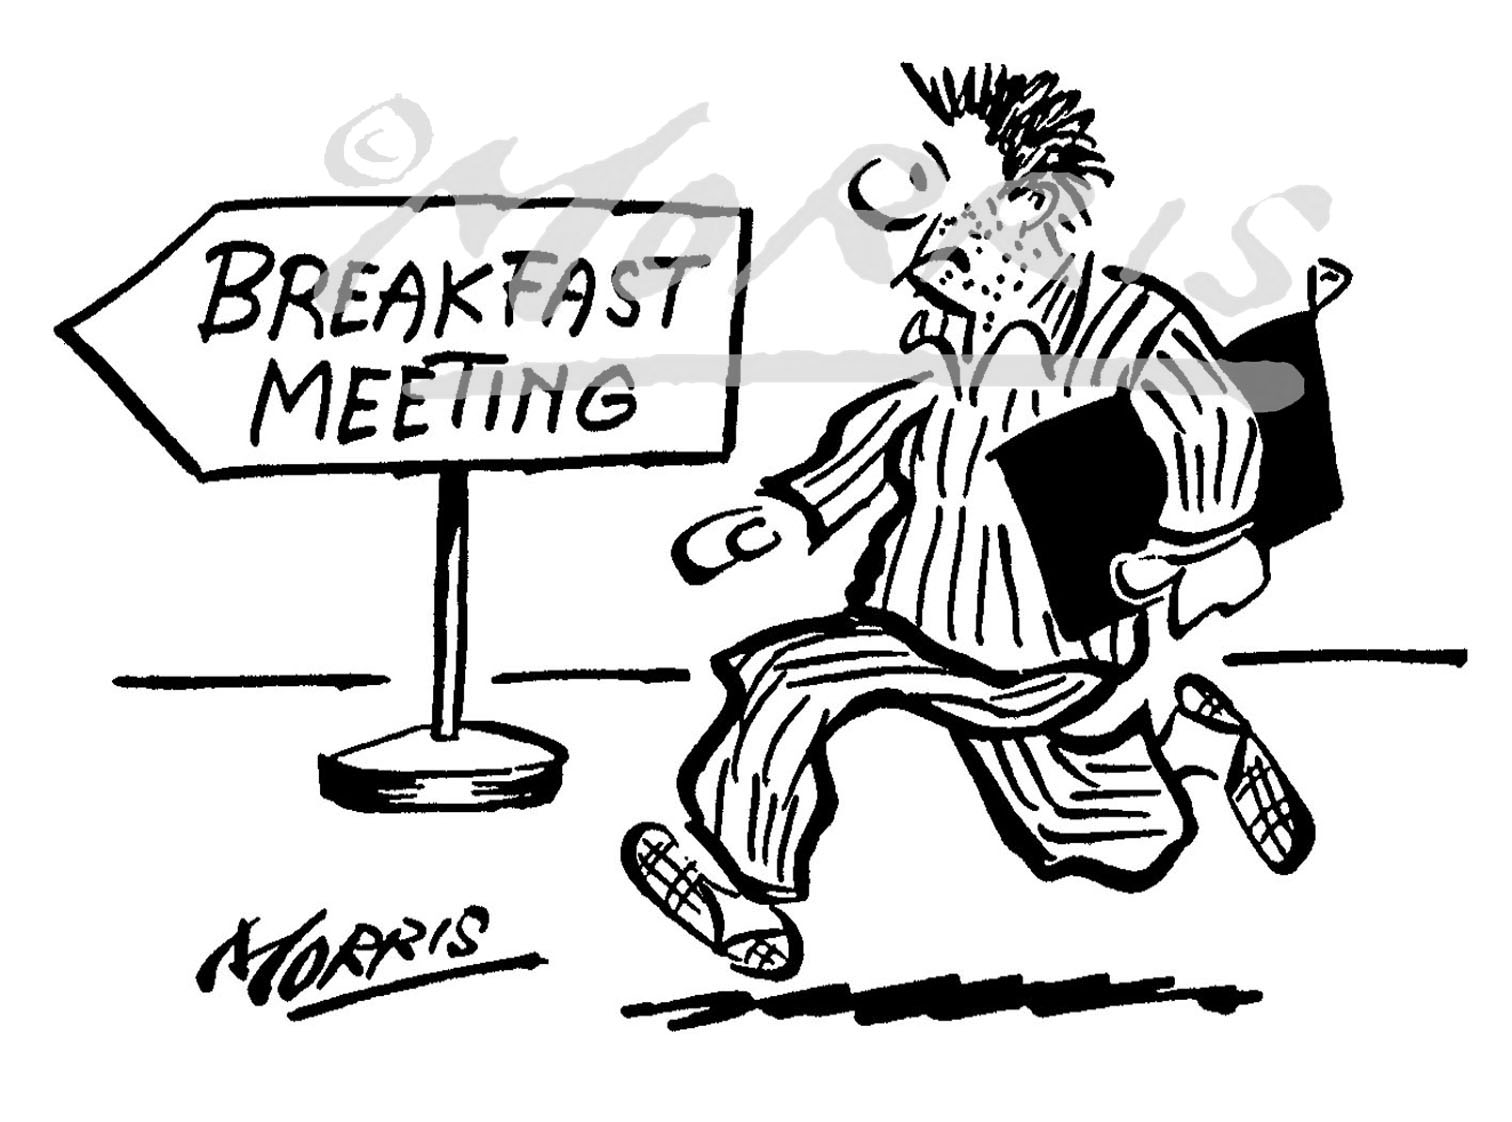 Breakfast meeting cartoon Ref: 1252bw